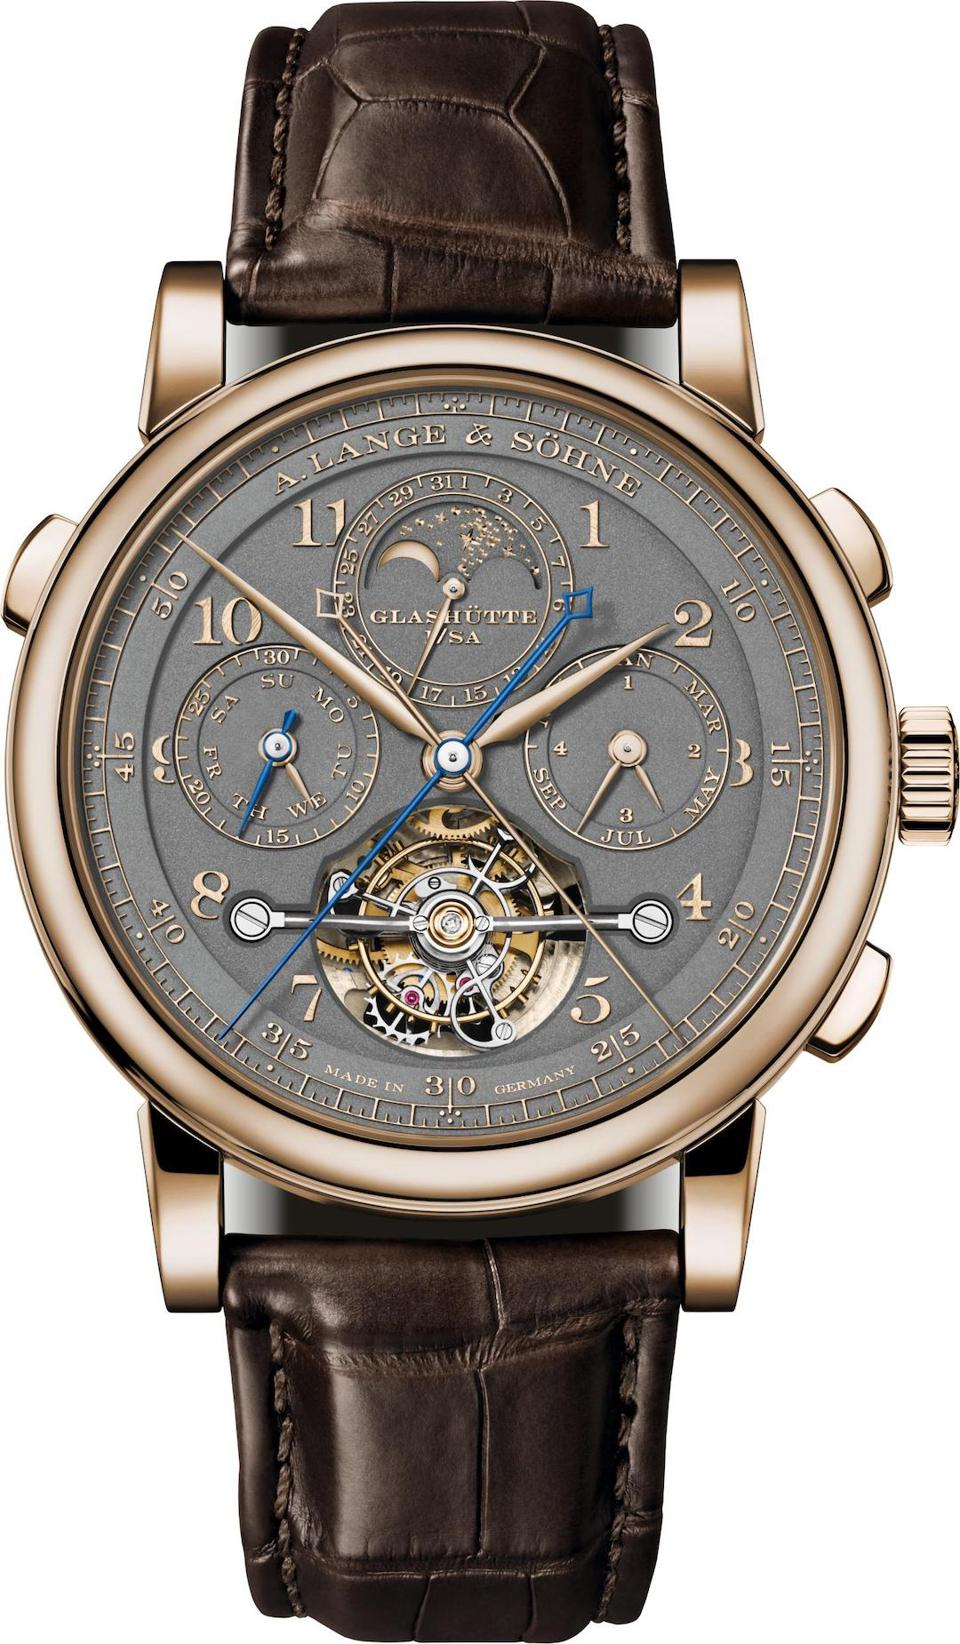 A. Lange  &  Söhne Turbograph Perpetual Calendar ″175th Homage to F.A. Lange″ watch